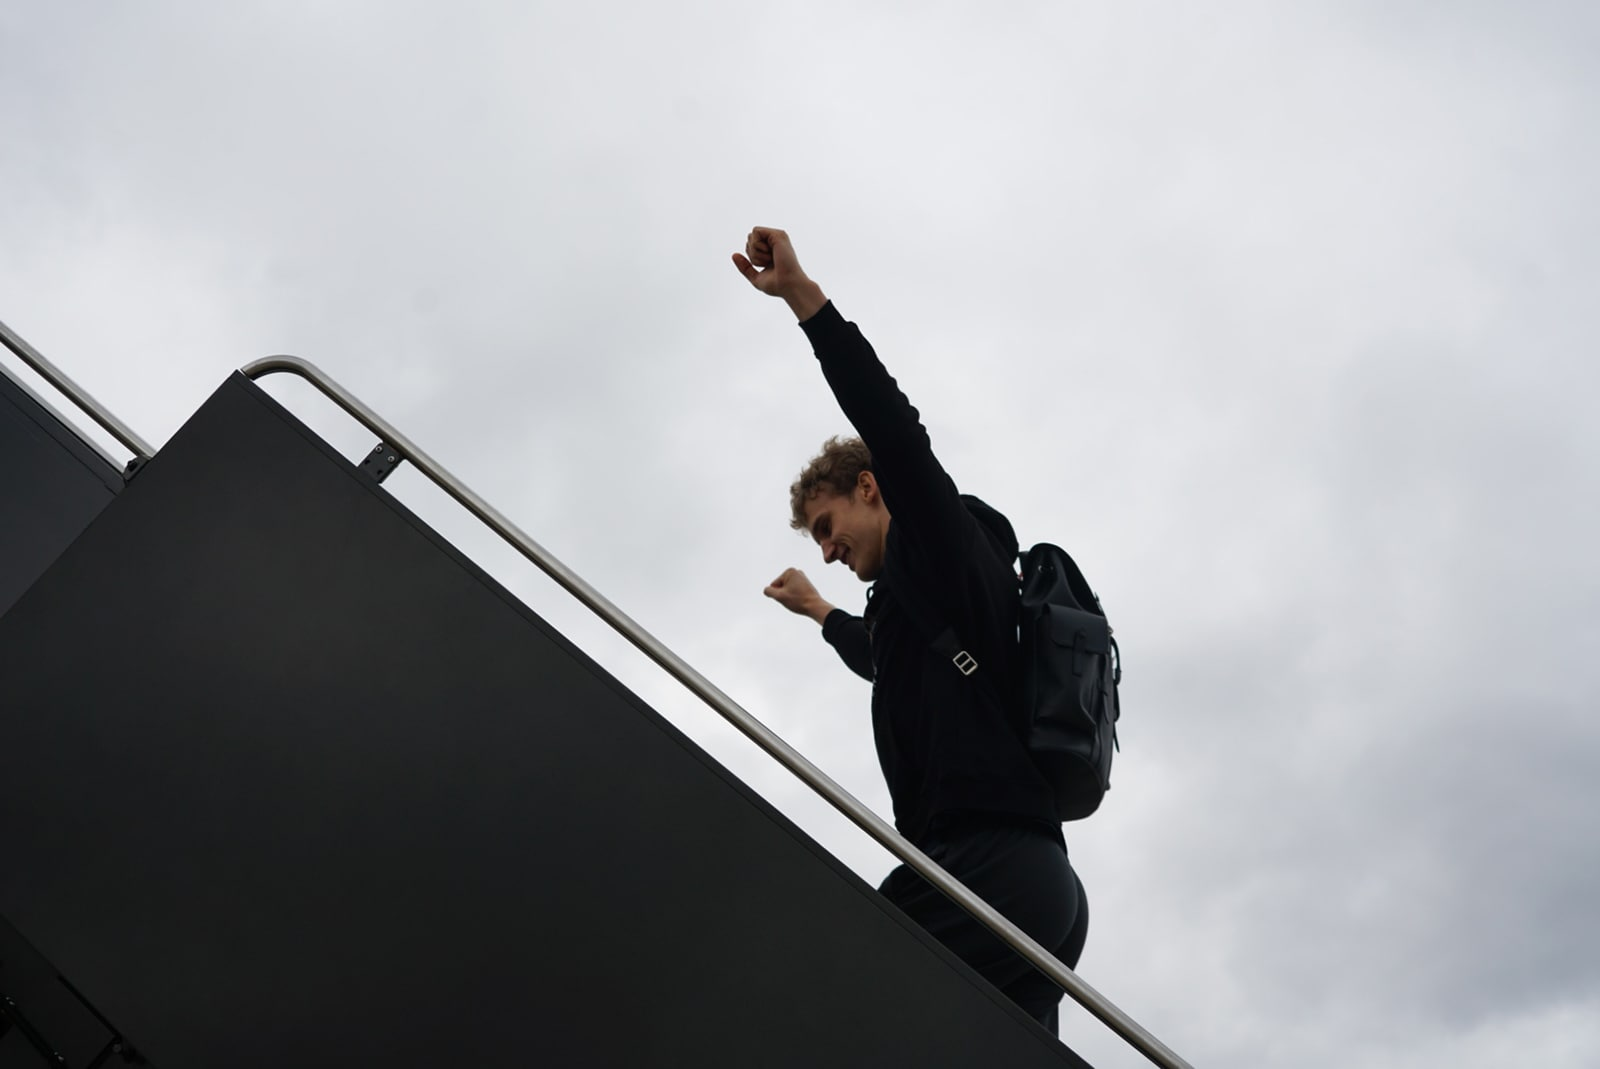 Lauri boarding the plan bound for Charlotte